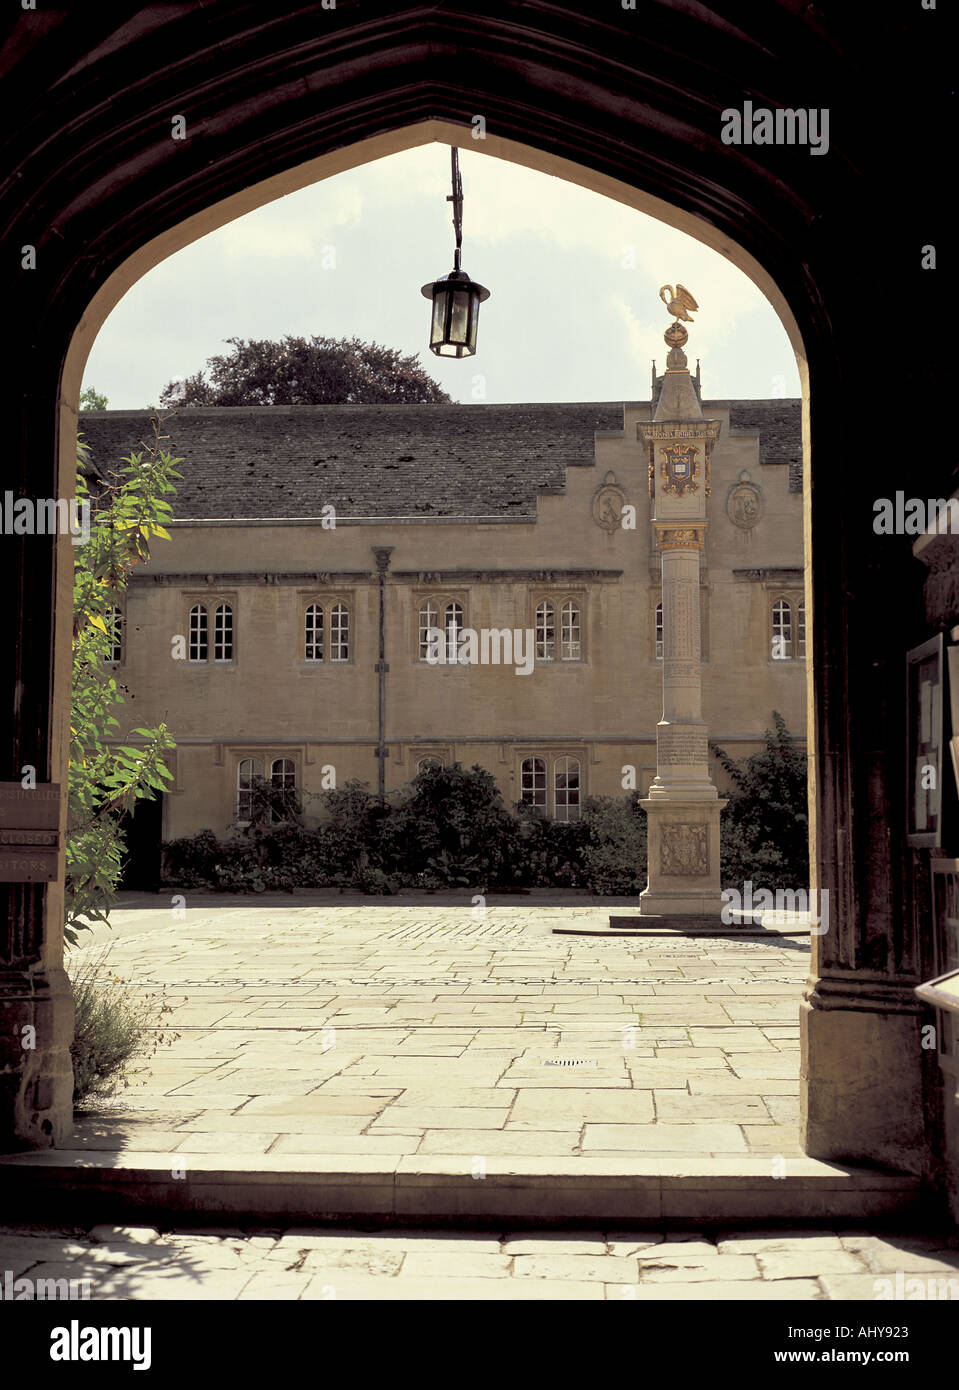 Front Quad of Corpus Christi College and the Pelican Column - Stock Image